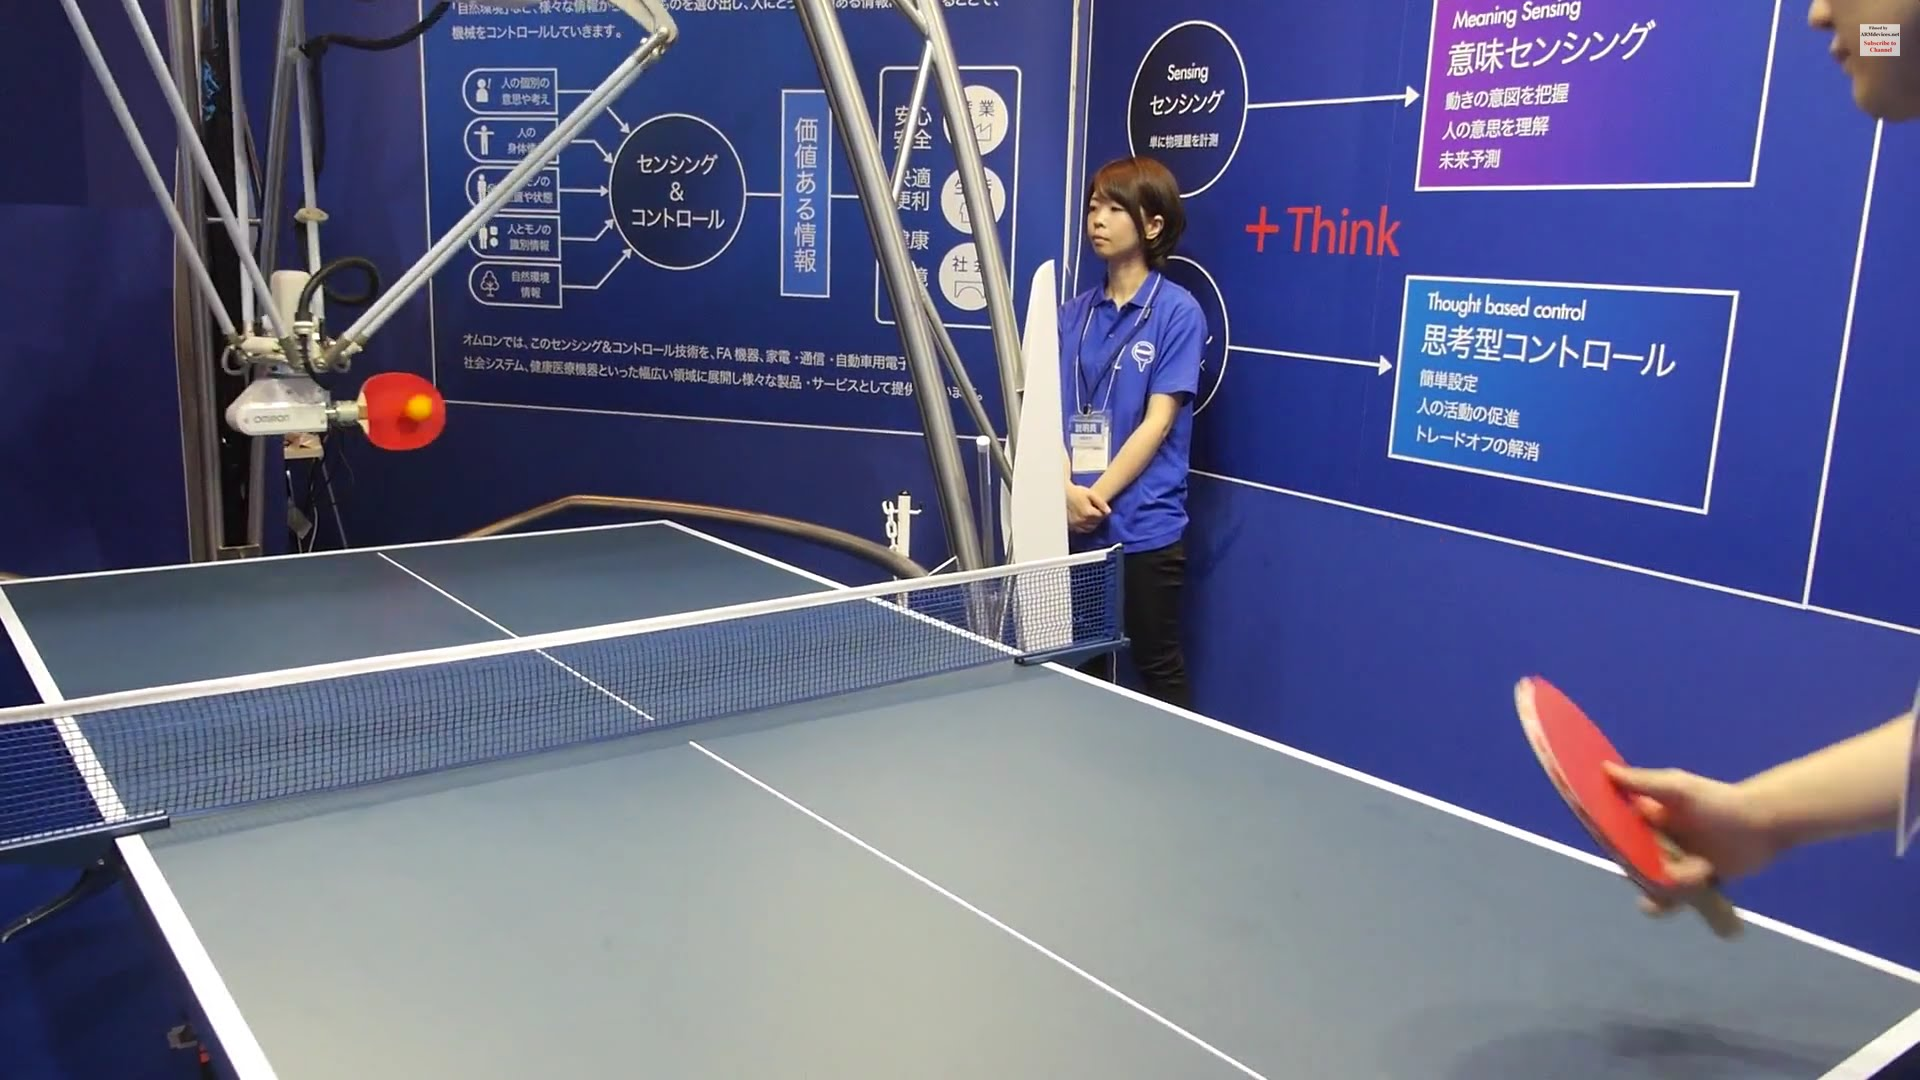 [VIDEO] Ping Pong Robot